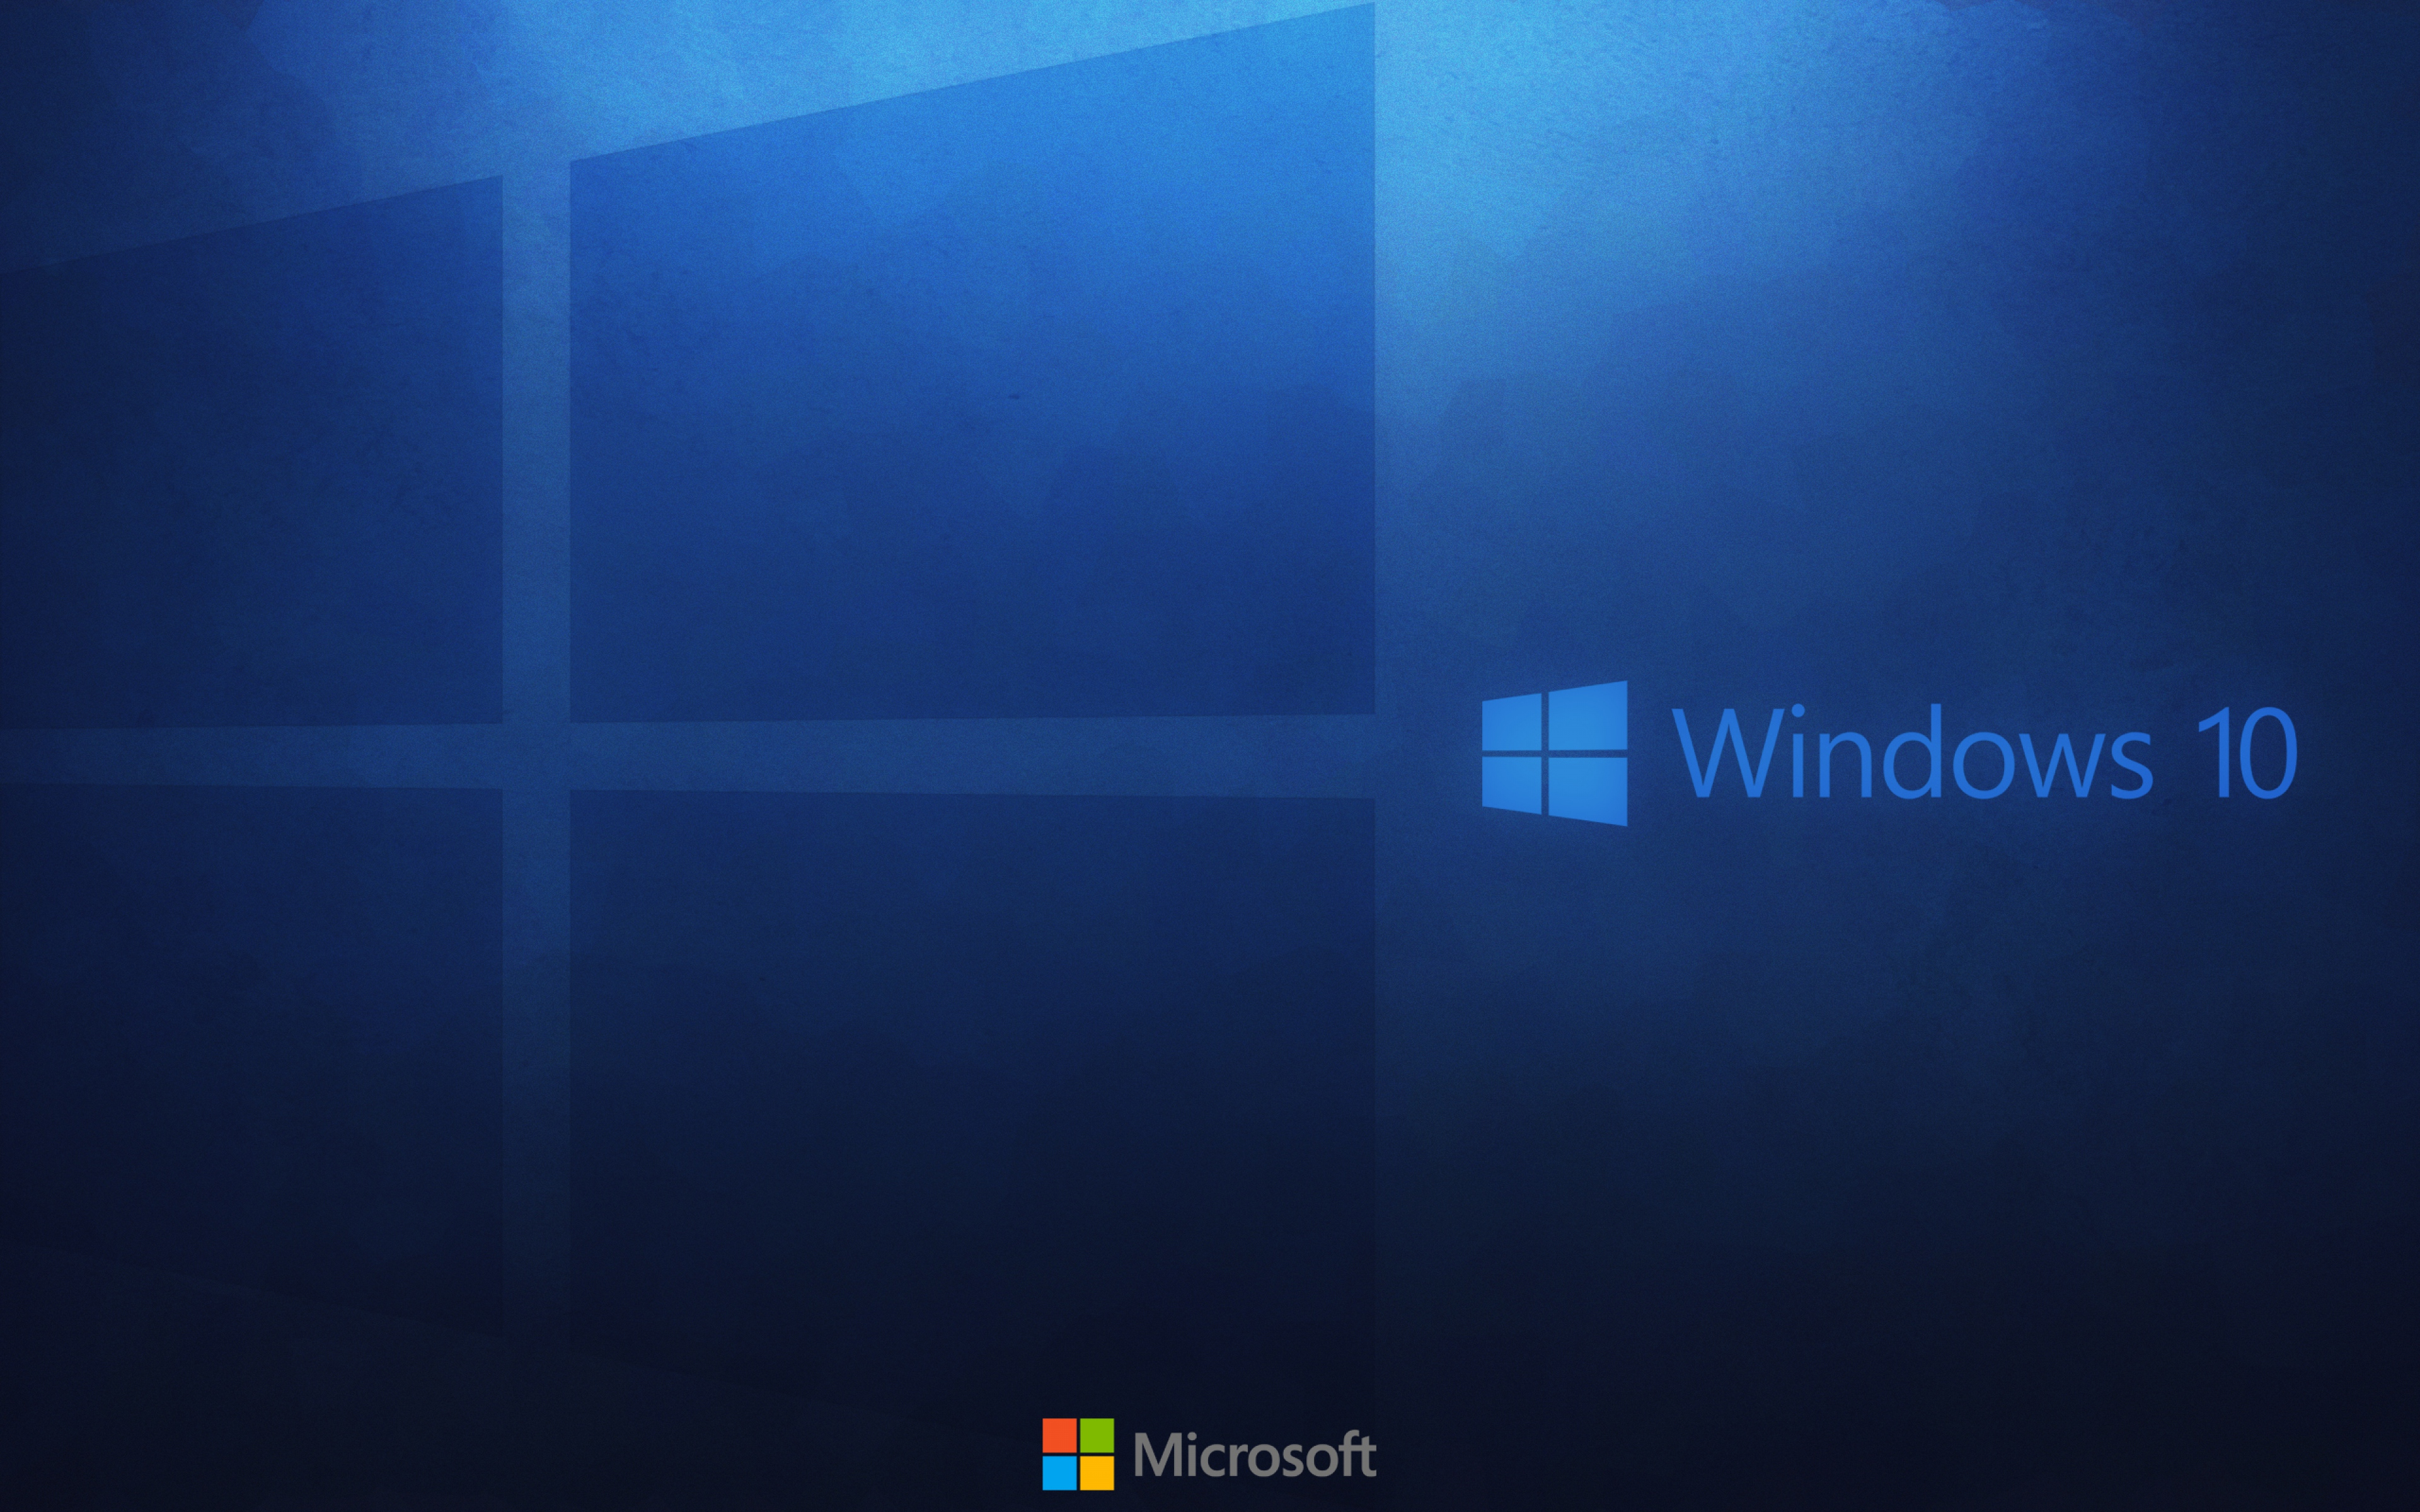 HD Background Windows 10 Wallpaper Microsoft Operating System Blue 3840x2400